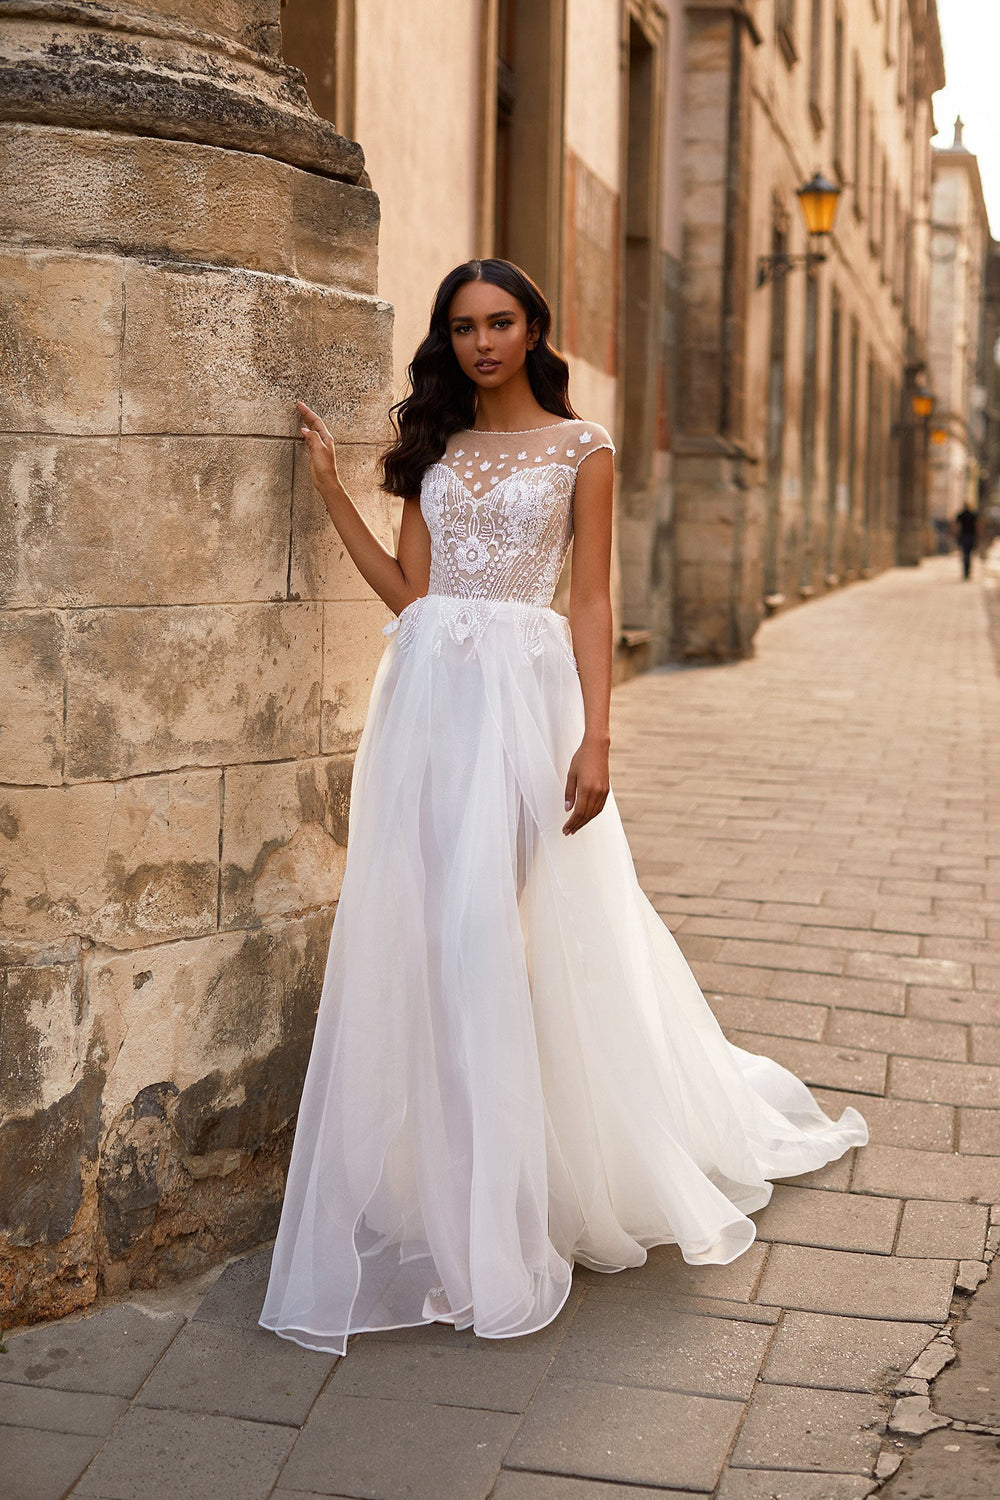 A&N Aleah - White Boho Bridal Gown with Glitter Embellished Bodice